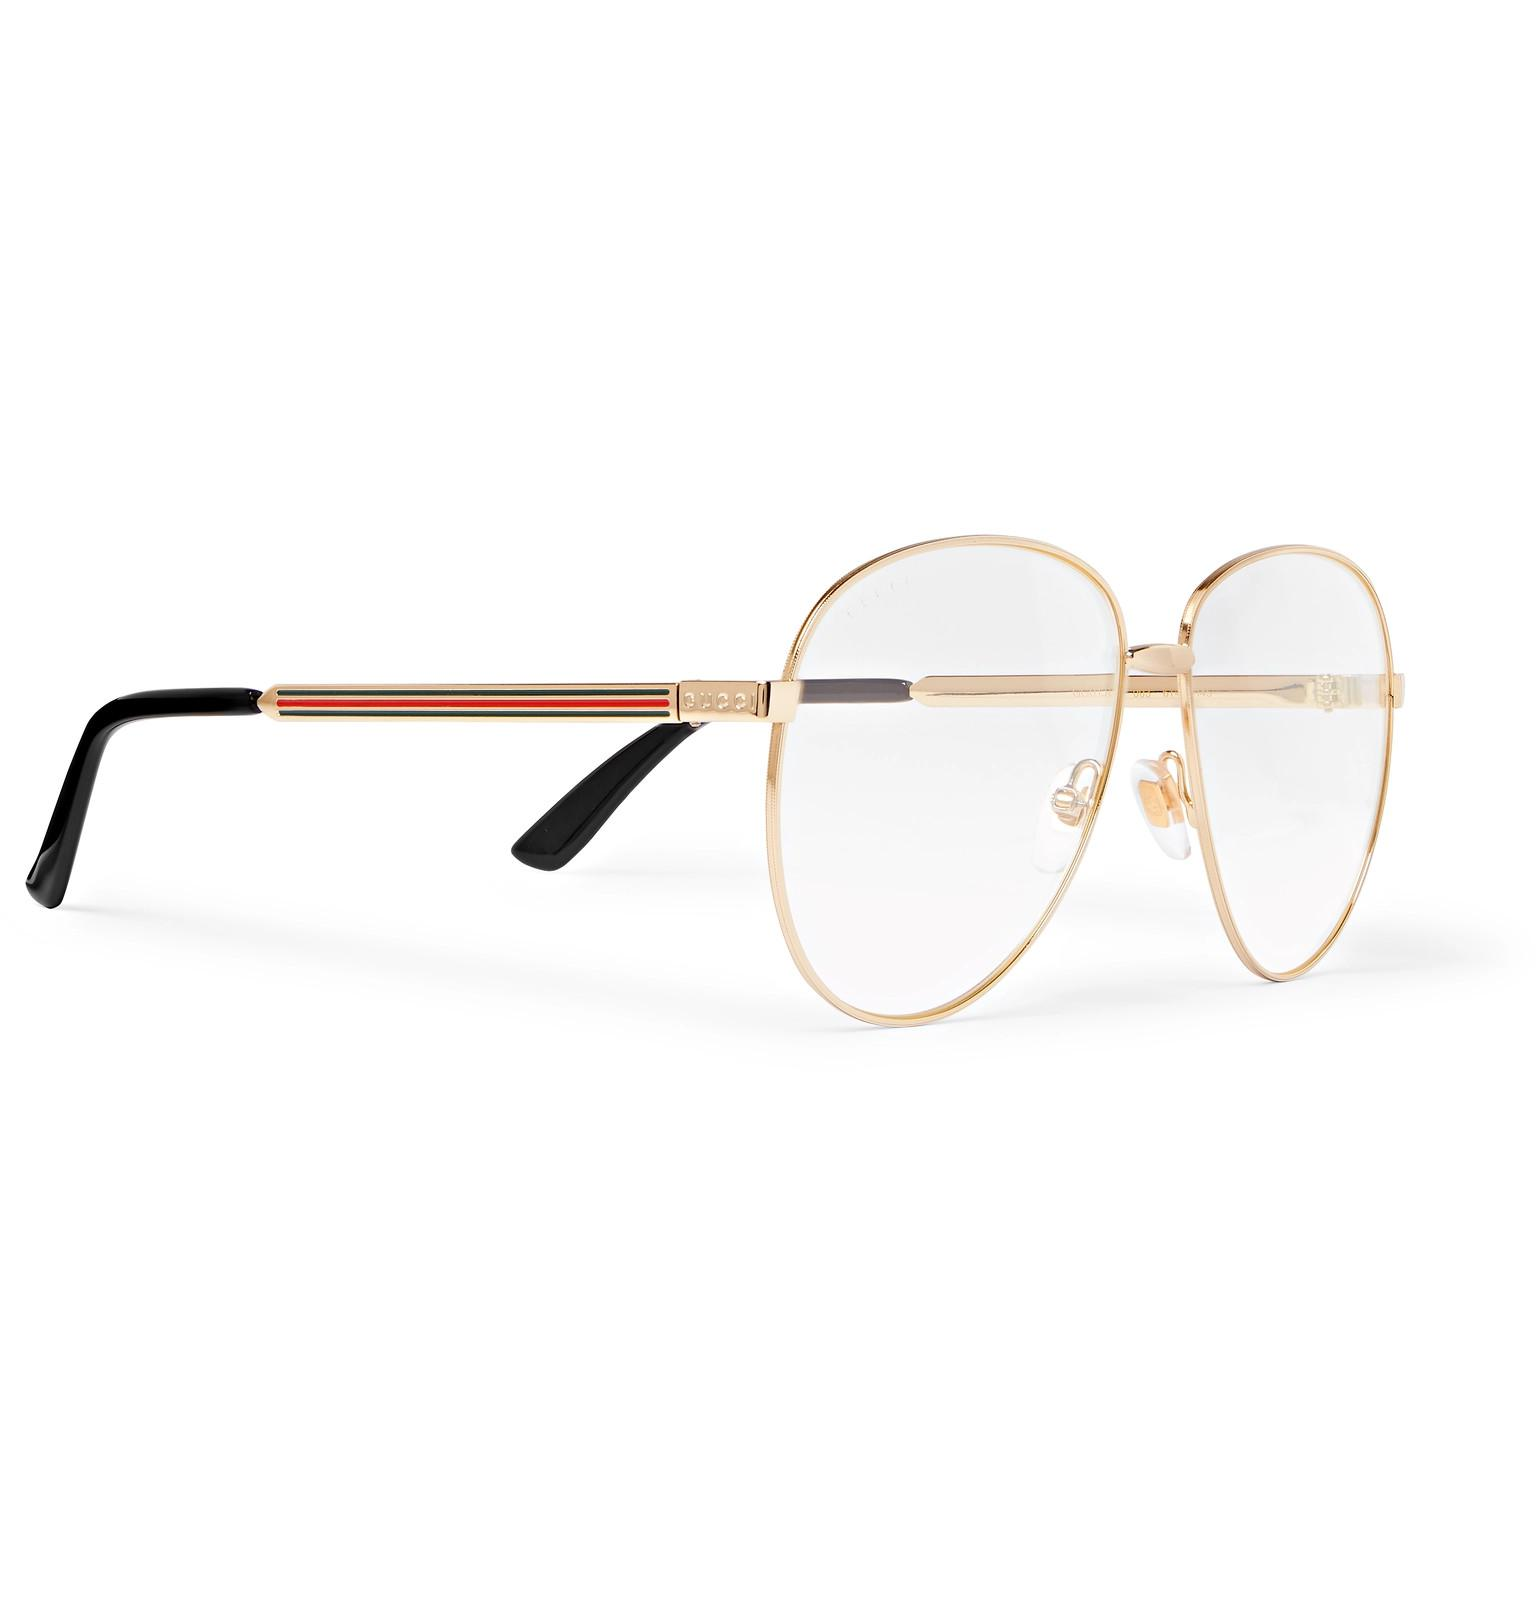 3229186fc9f1 Gucci - Metallic Aviator-style Gold-tone Optical Glasses for Men - Lyst.  View fullscreen